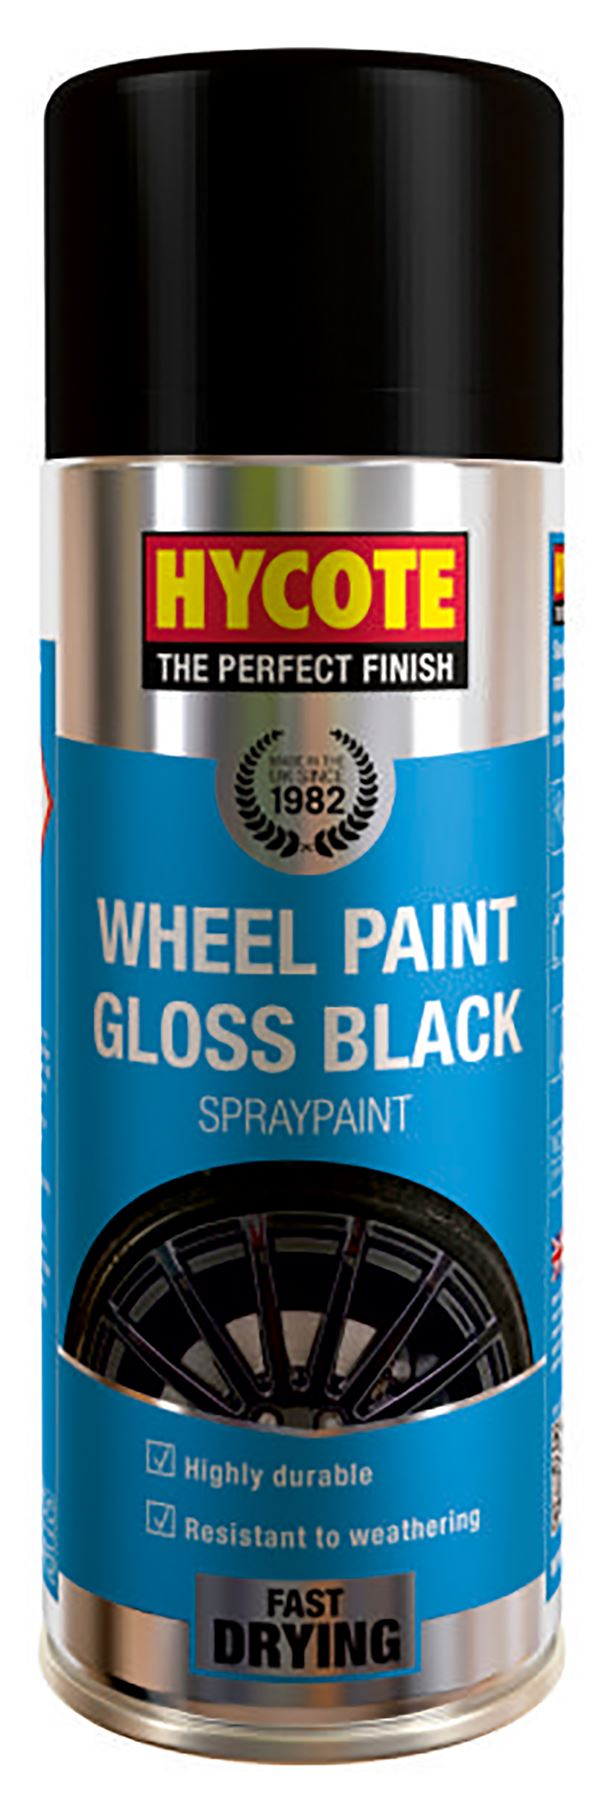 Hycote Gloss Black Wheel Paint - 400ml